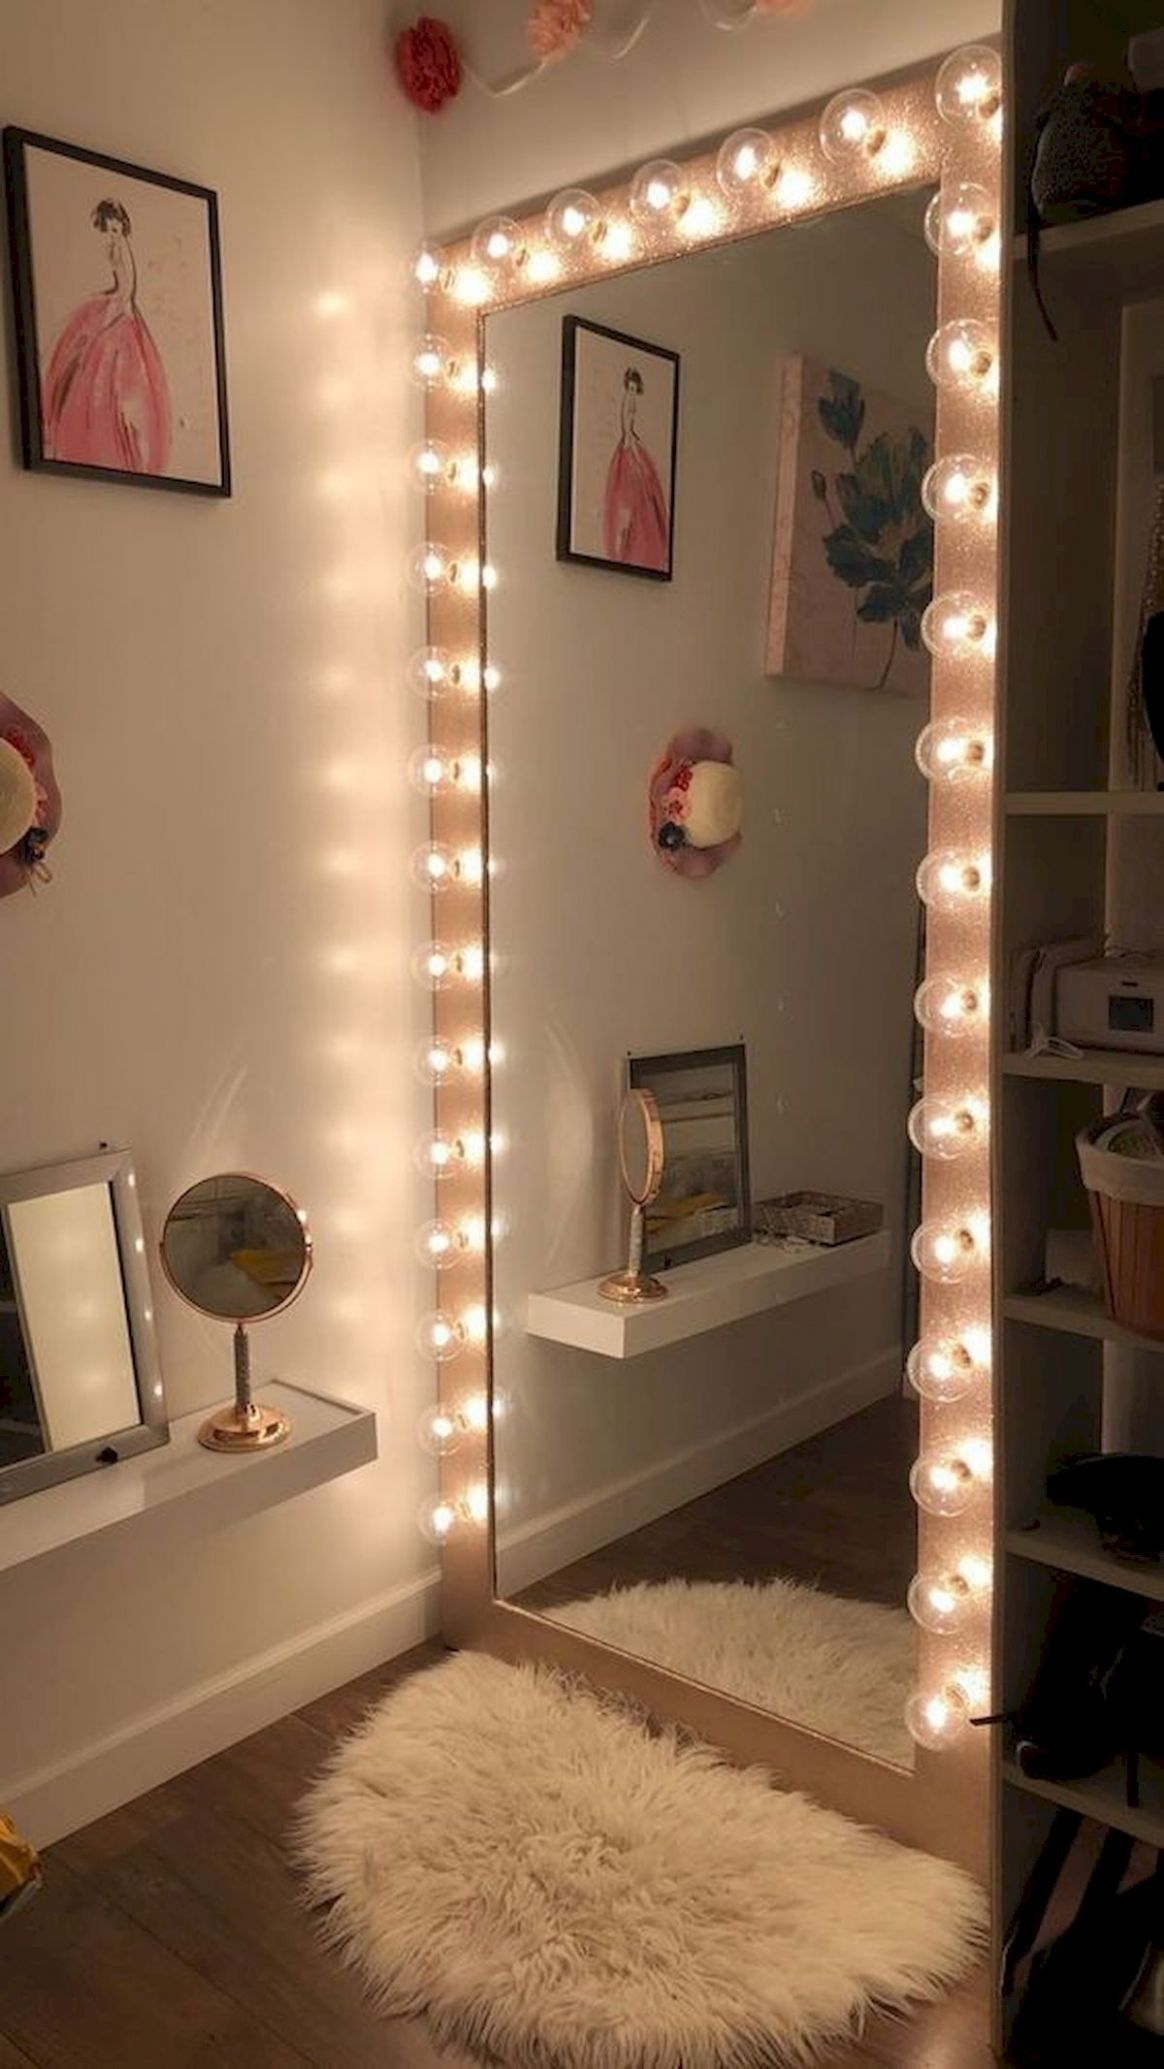 11 Lovely Makeup Rooms Decor Ideas And Remodel   Tumblr zimmer ..